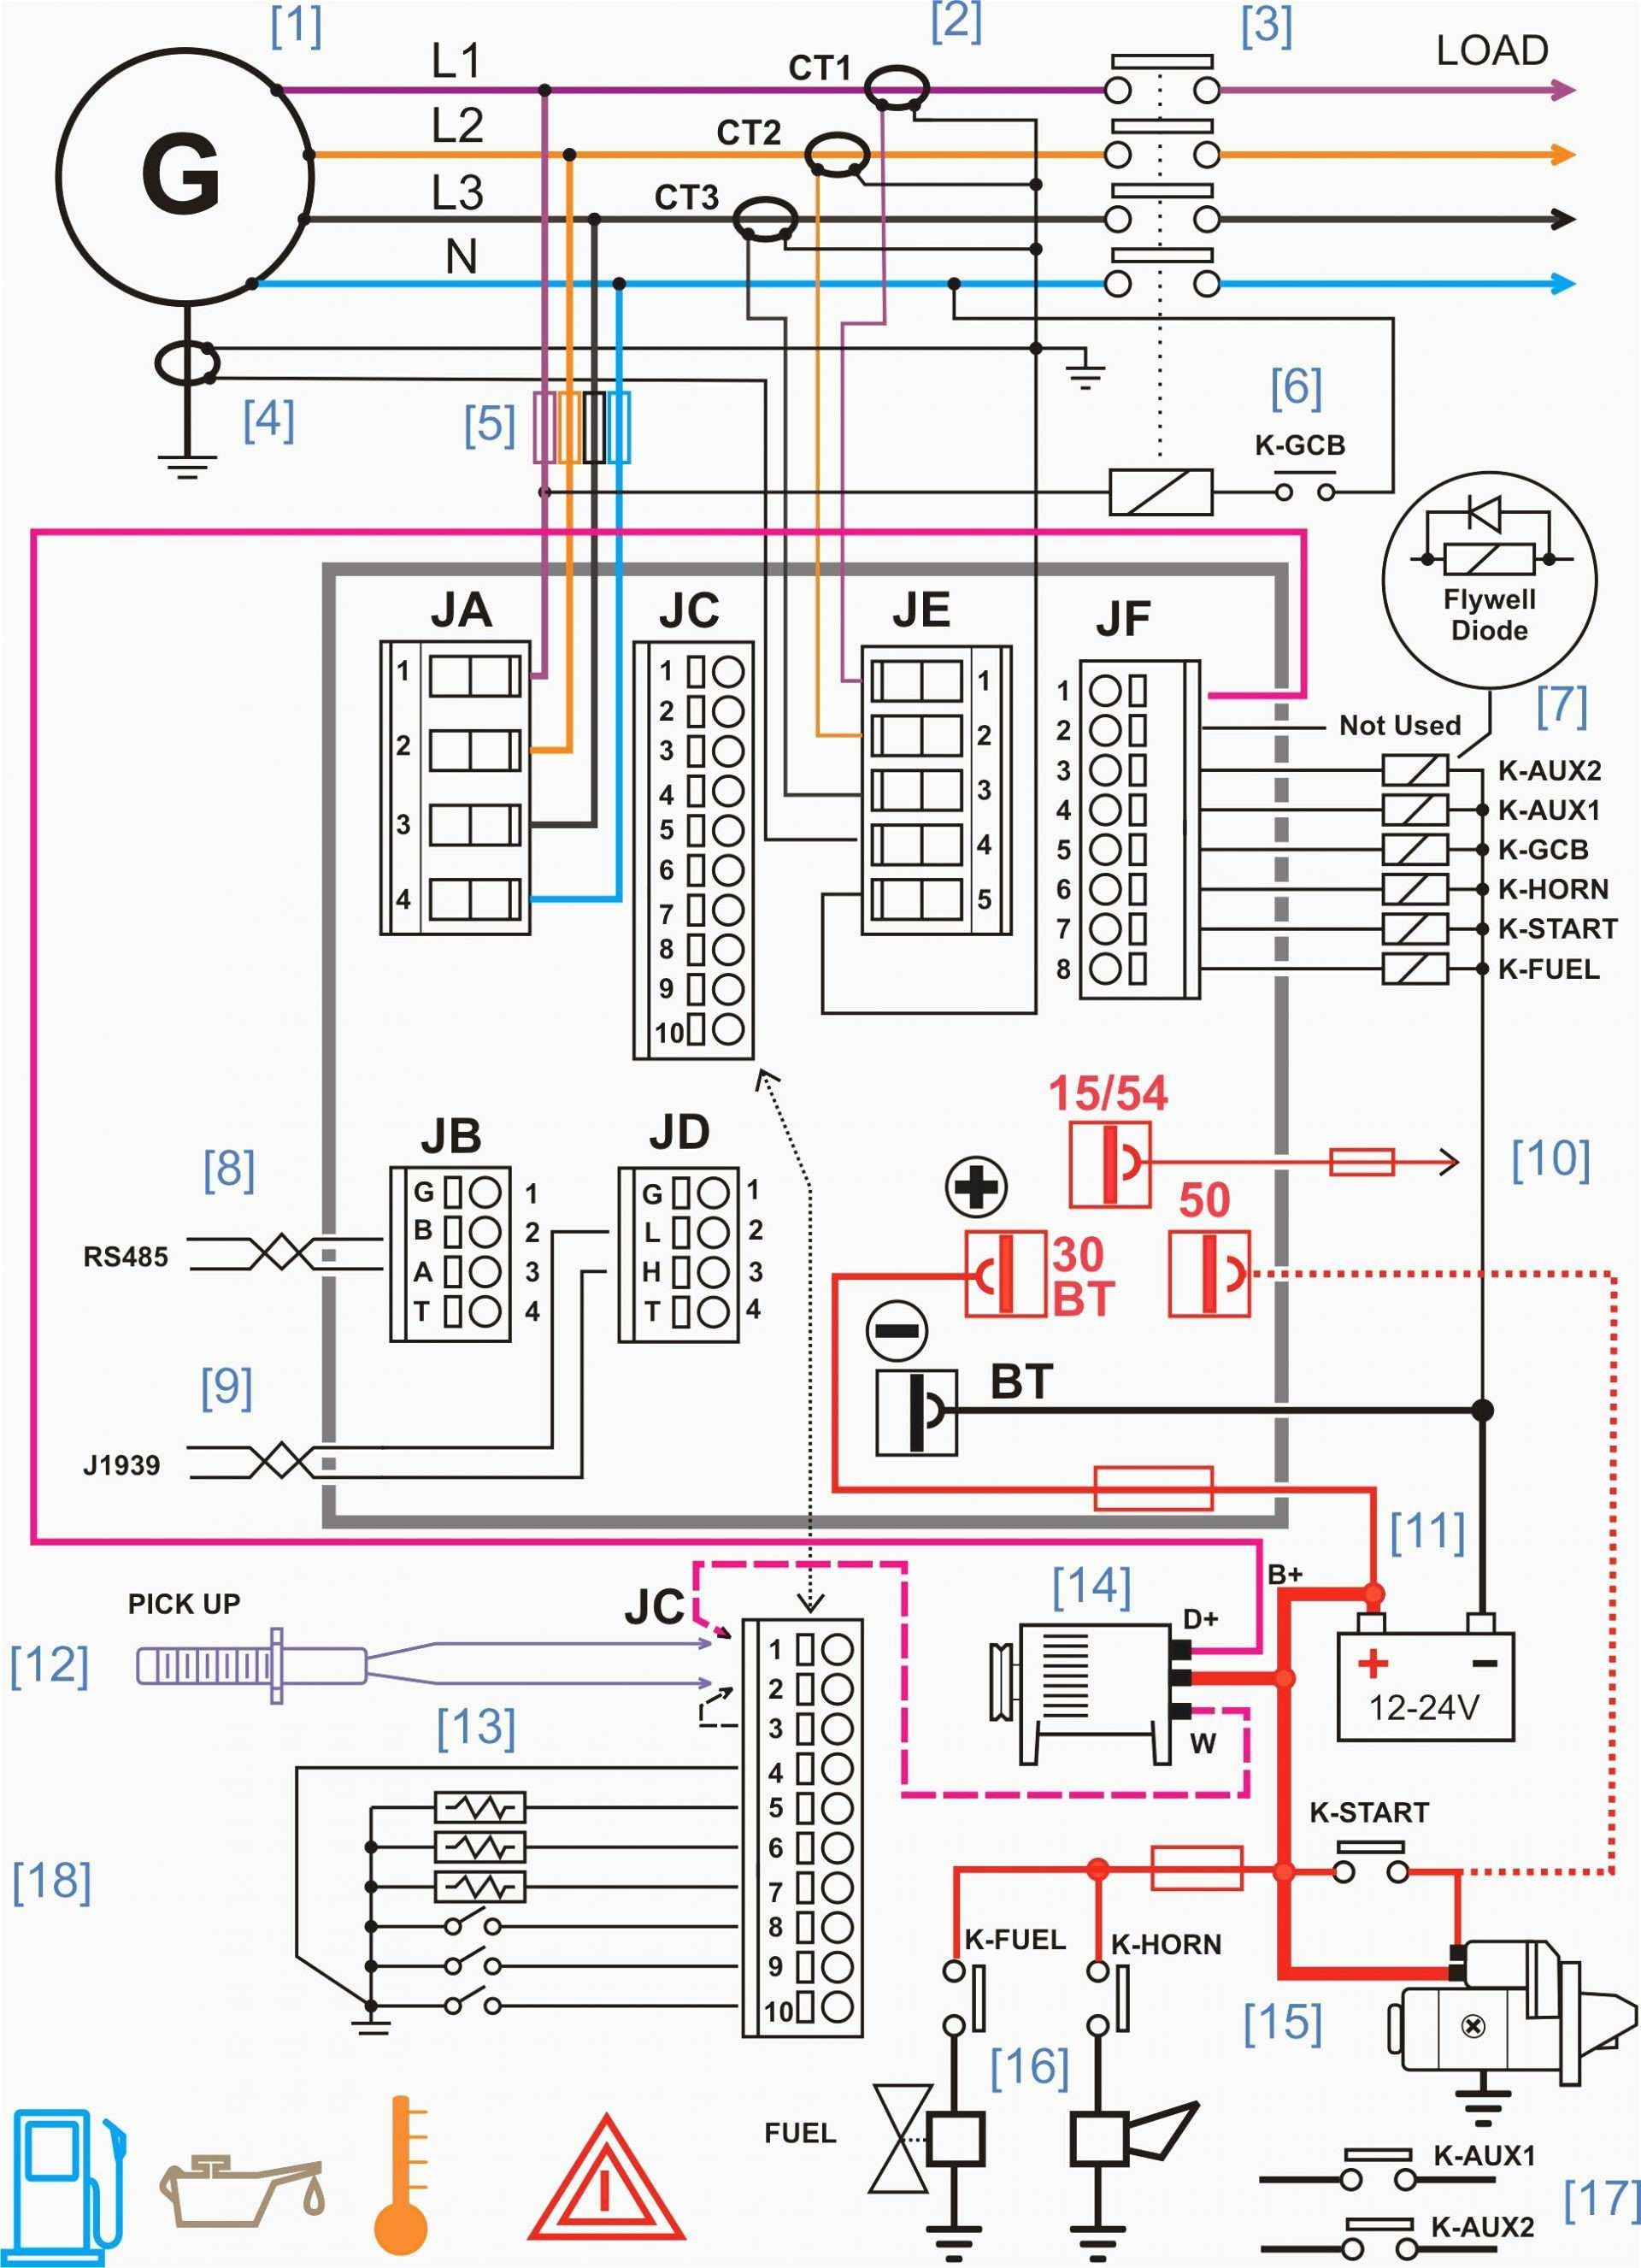 harley davidson wiring diagram Collection-Vl Alternator Wiring Diagram Best Fresh Free Harley Davidson Wiring 1-g